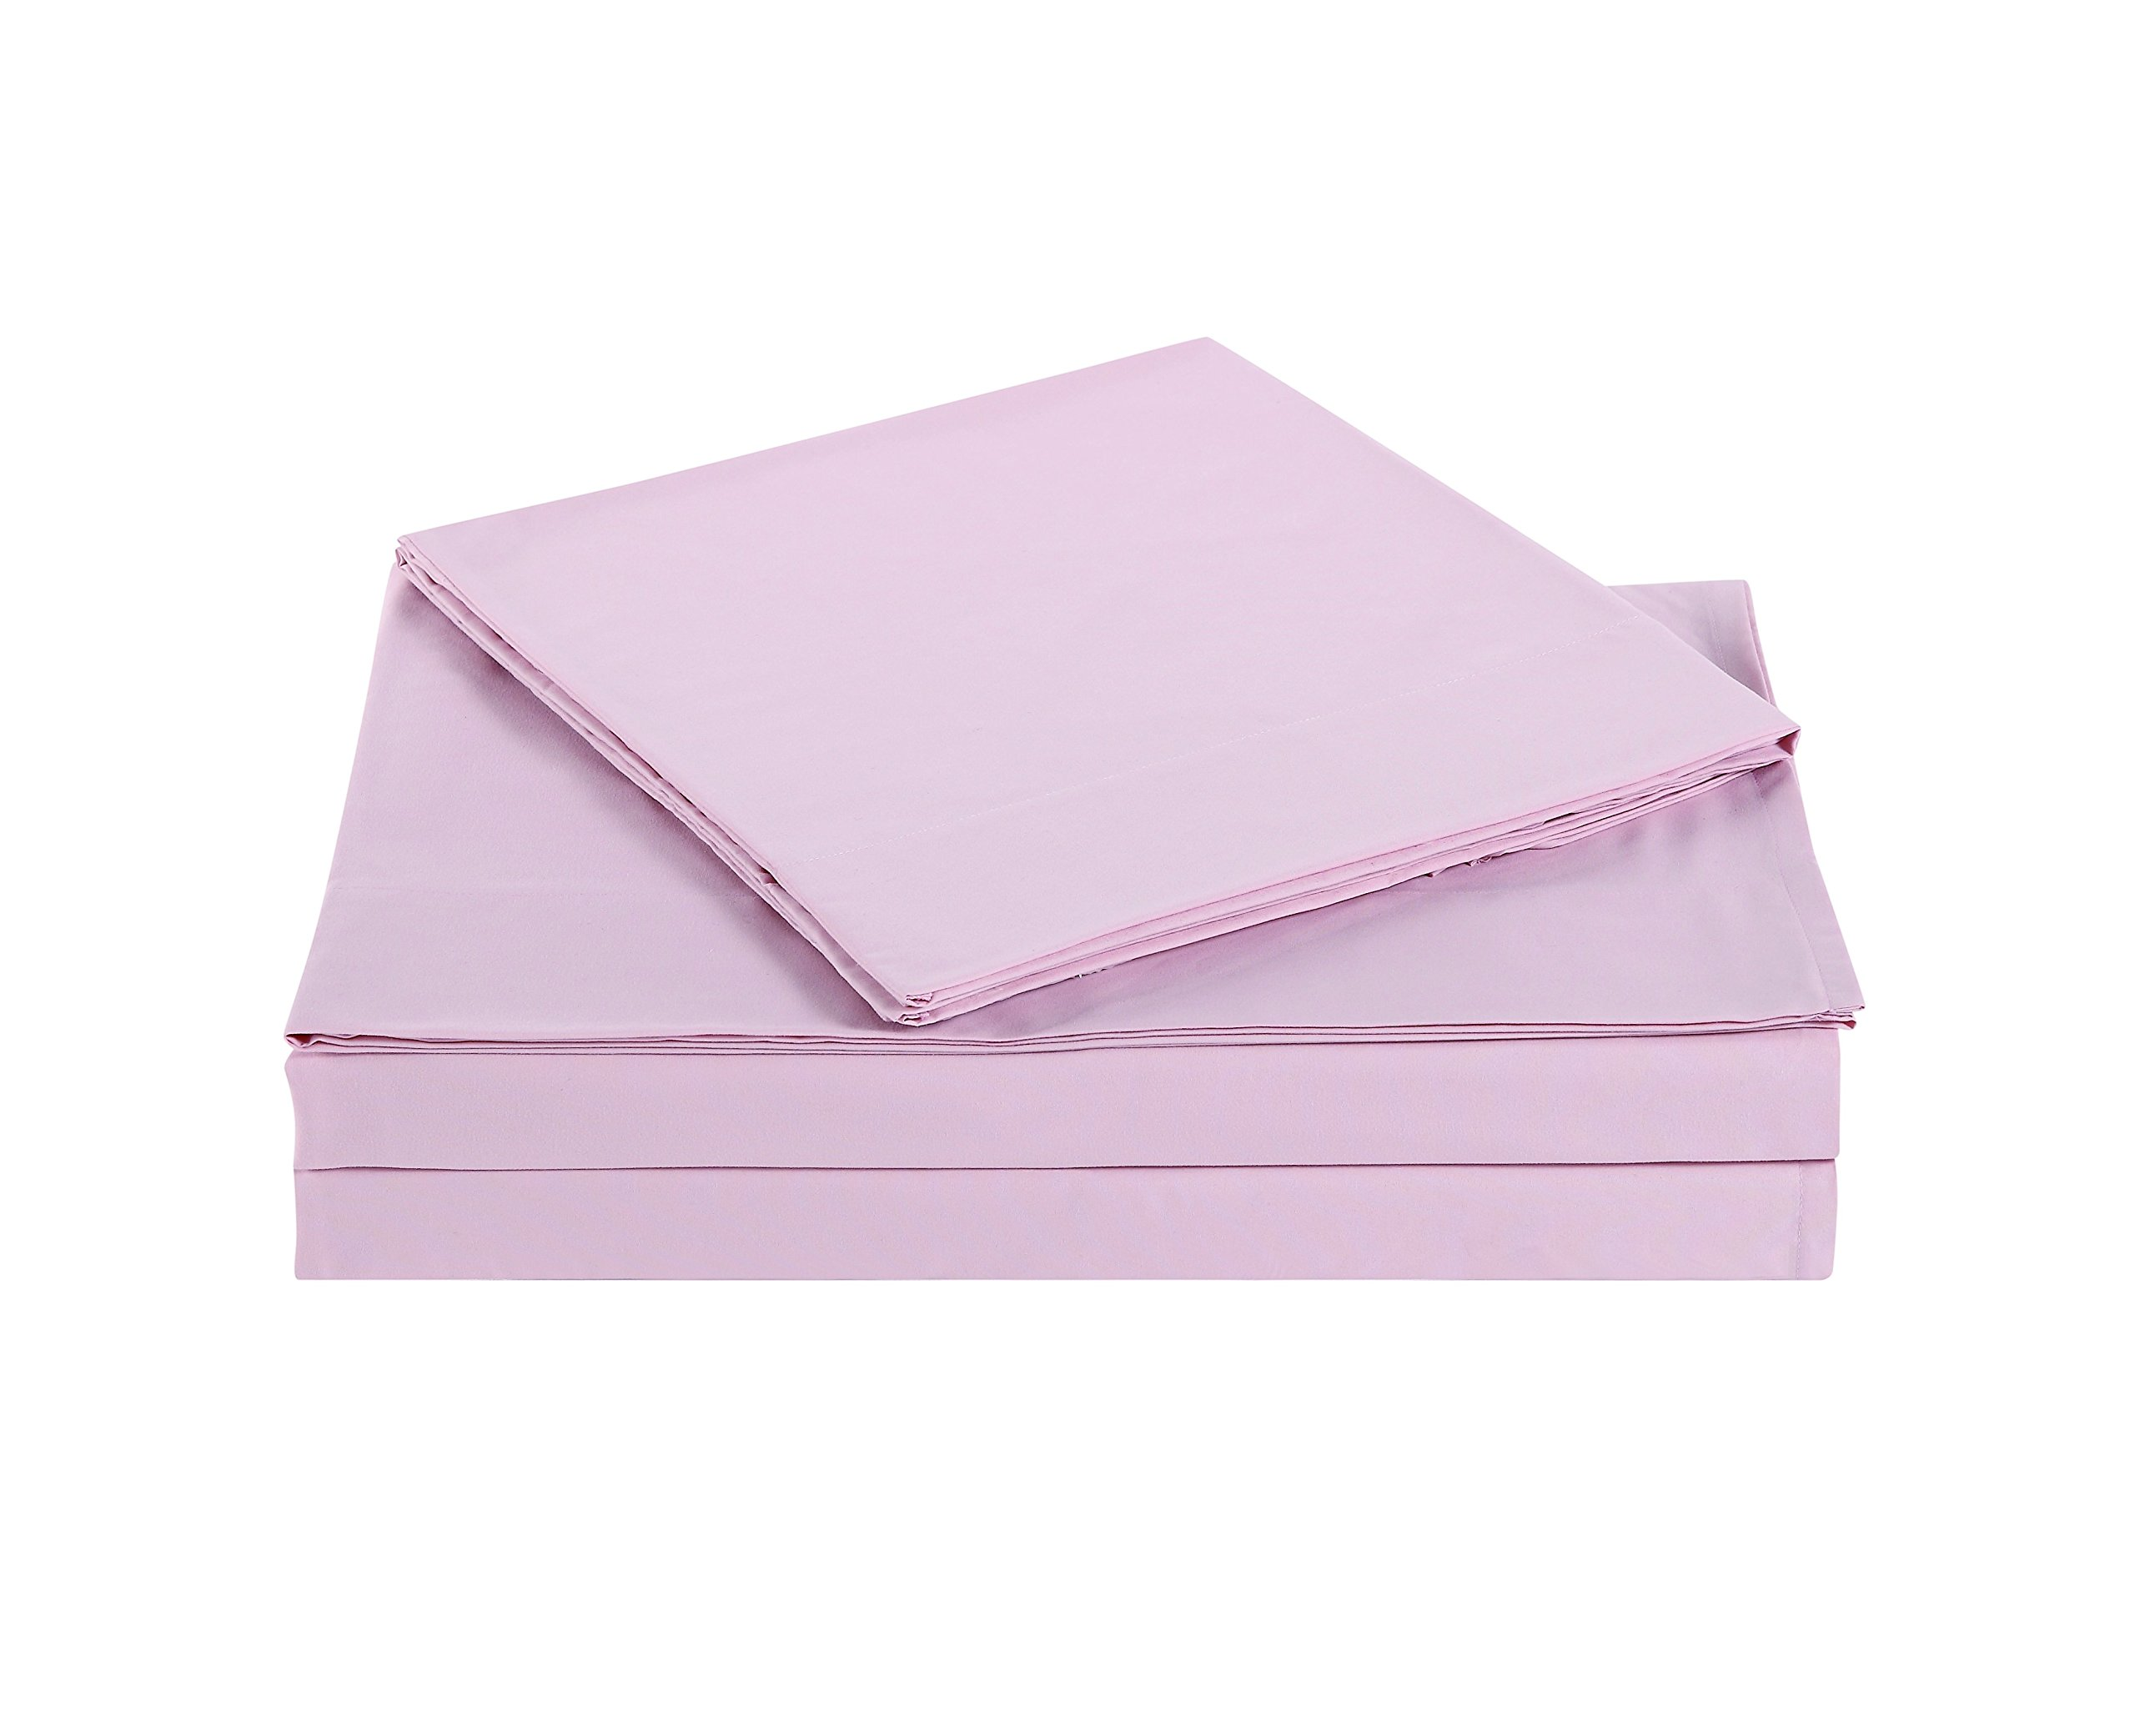 Truly Soft Everyday Sheet Set, SS1658BSQN-4700, Queen Blush by Truly Soft Everyday